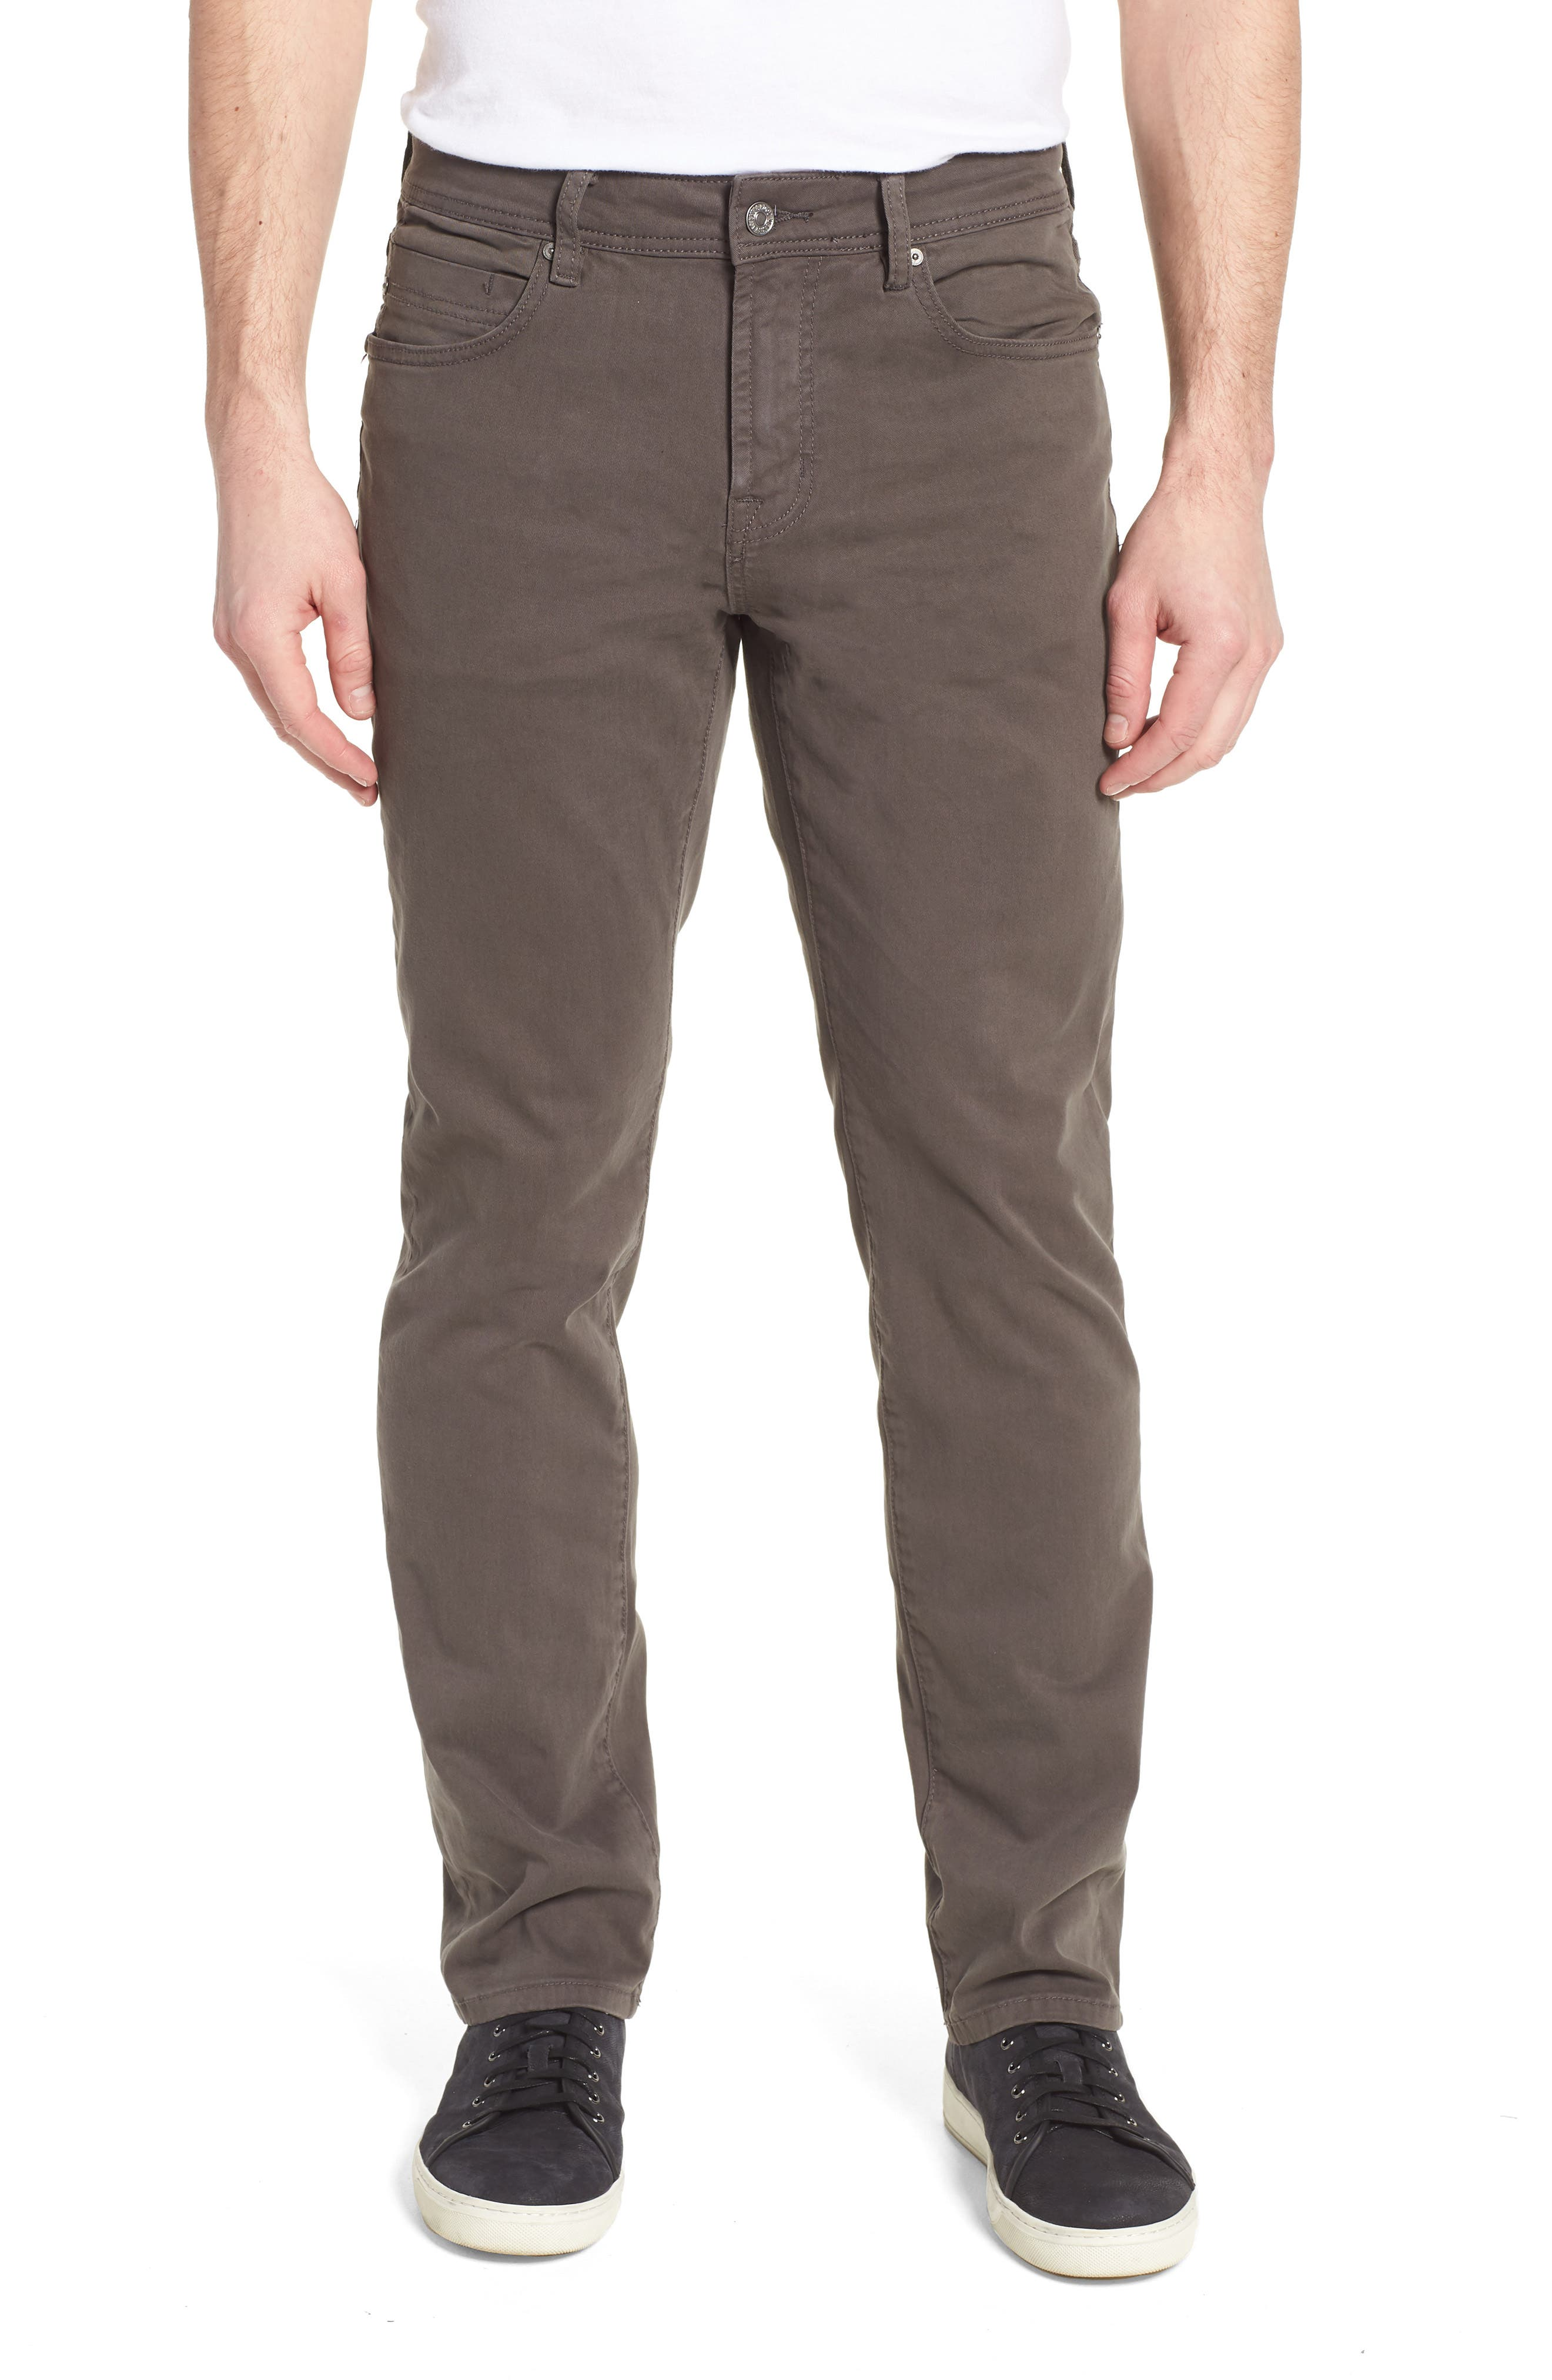 Jeans Co. Regent Relaxed Fit Jeans,                         Main,                         color, DEEP EARTH